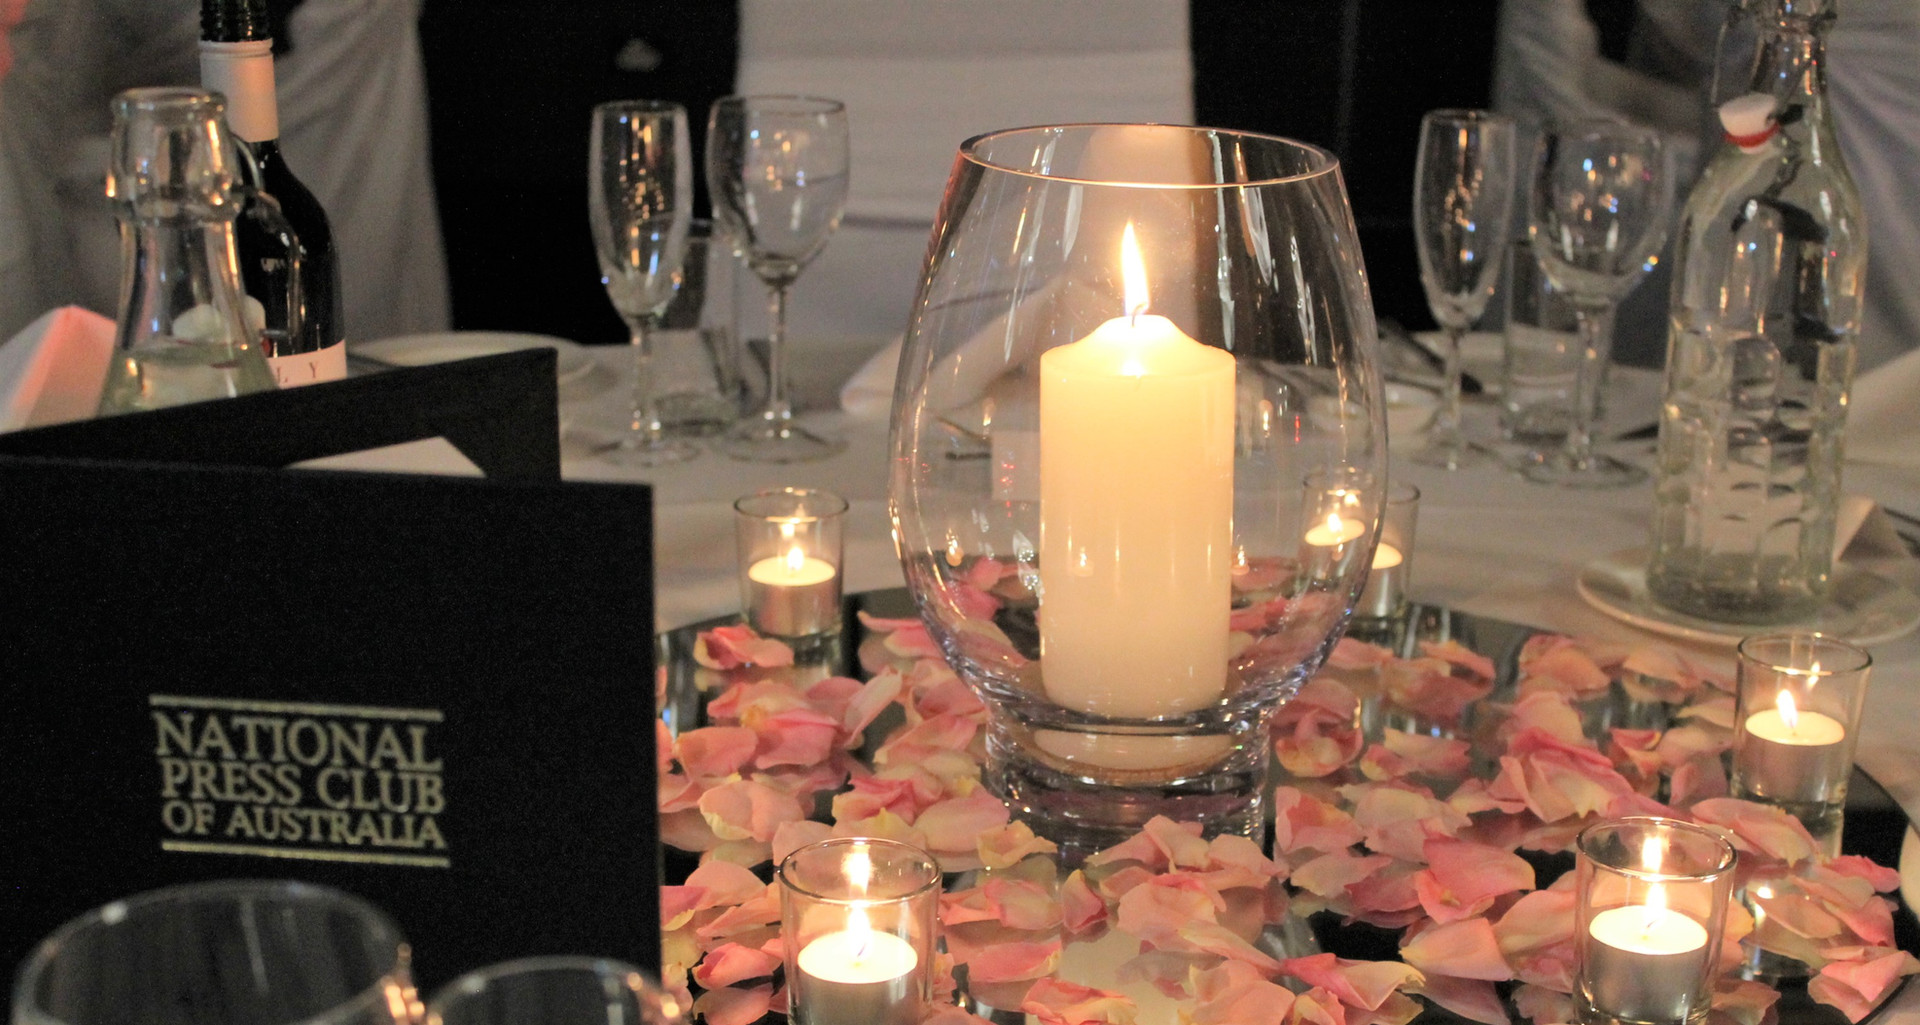 Candle in Vase Wedding Centrepiece